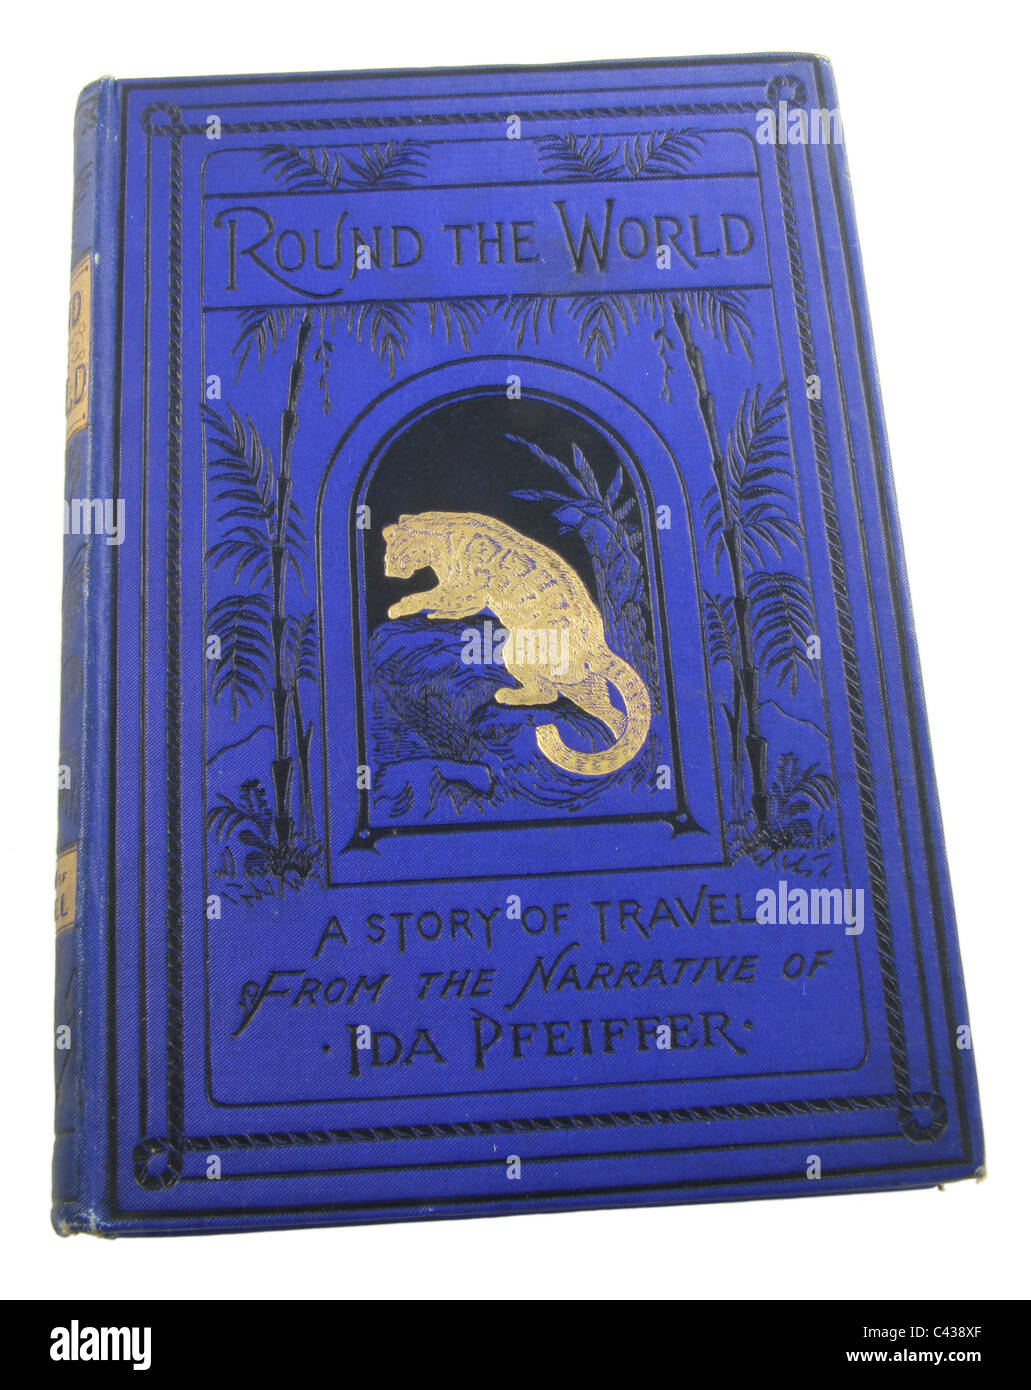 Round the World, A Story of Travel from the Narrative of Ida Pfeiffer, published by D. Murray Smith, 1898. - Stock Image